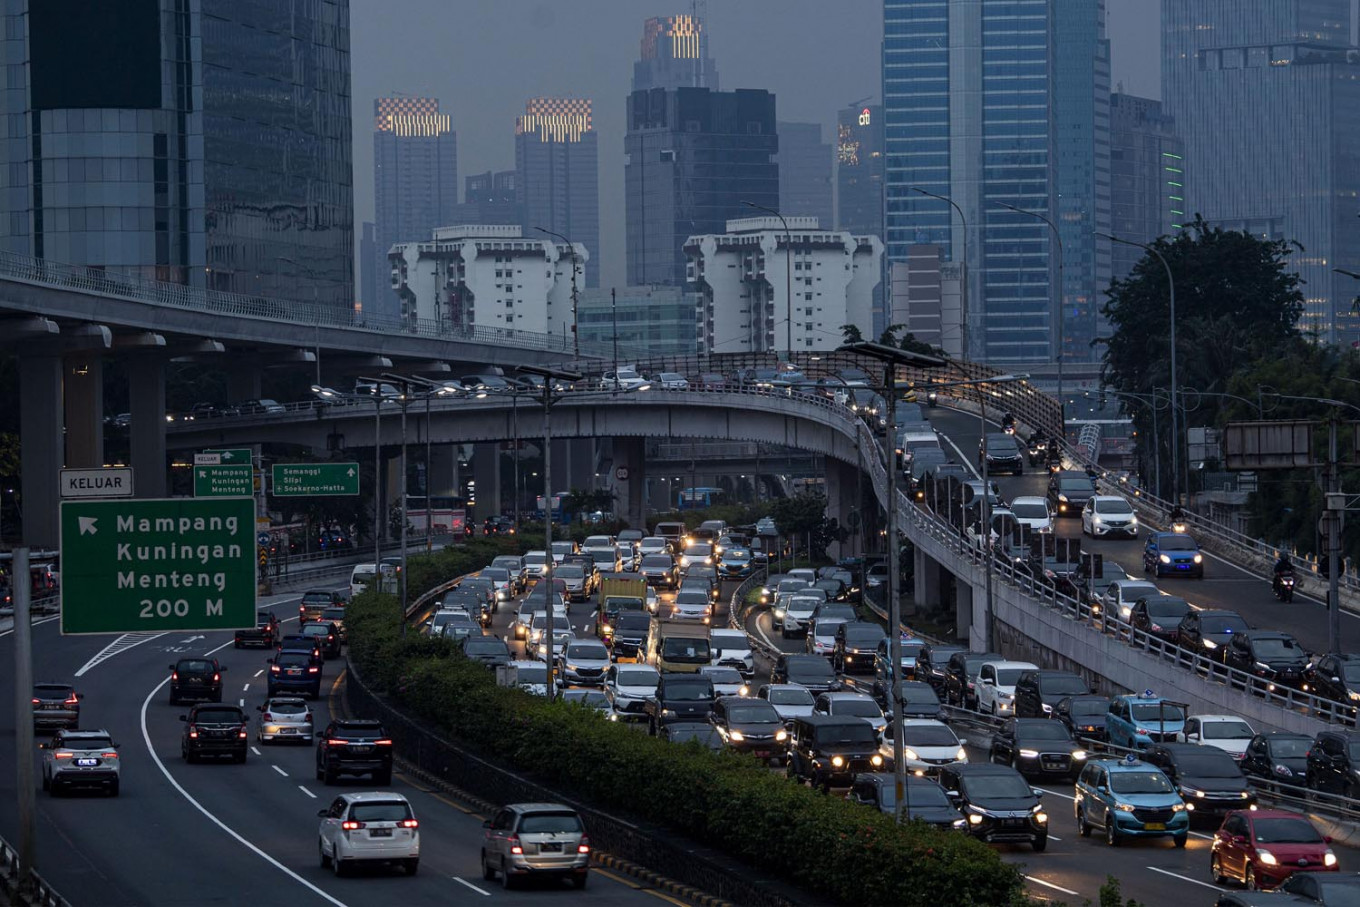 Satellite cities undecided about following Jakarta with strict virus curbs